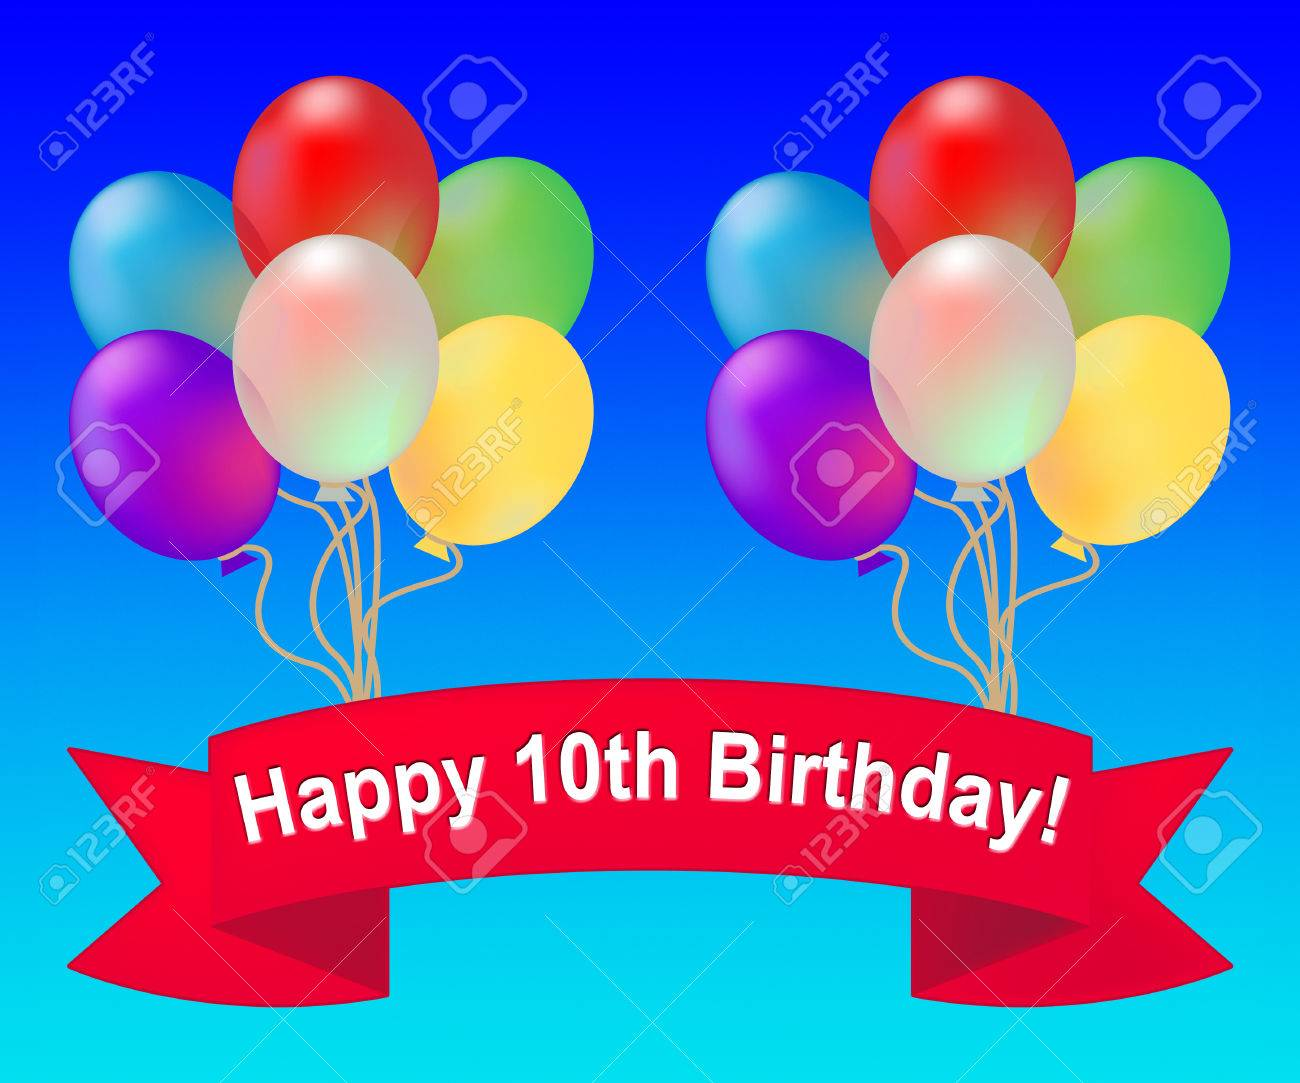 happy 10th birthday clipart ; 68830717-happy-tenth-birthday-balloons-meaning-10th-party-celebration-3d-illustration